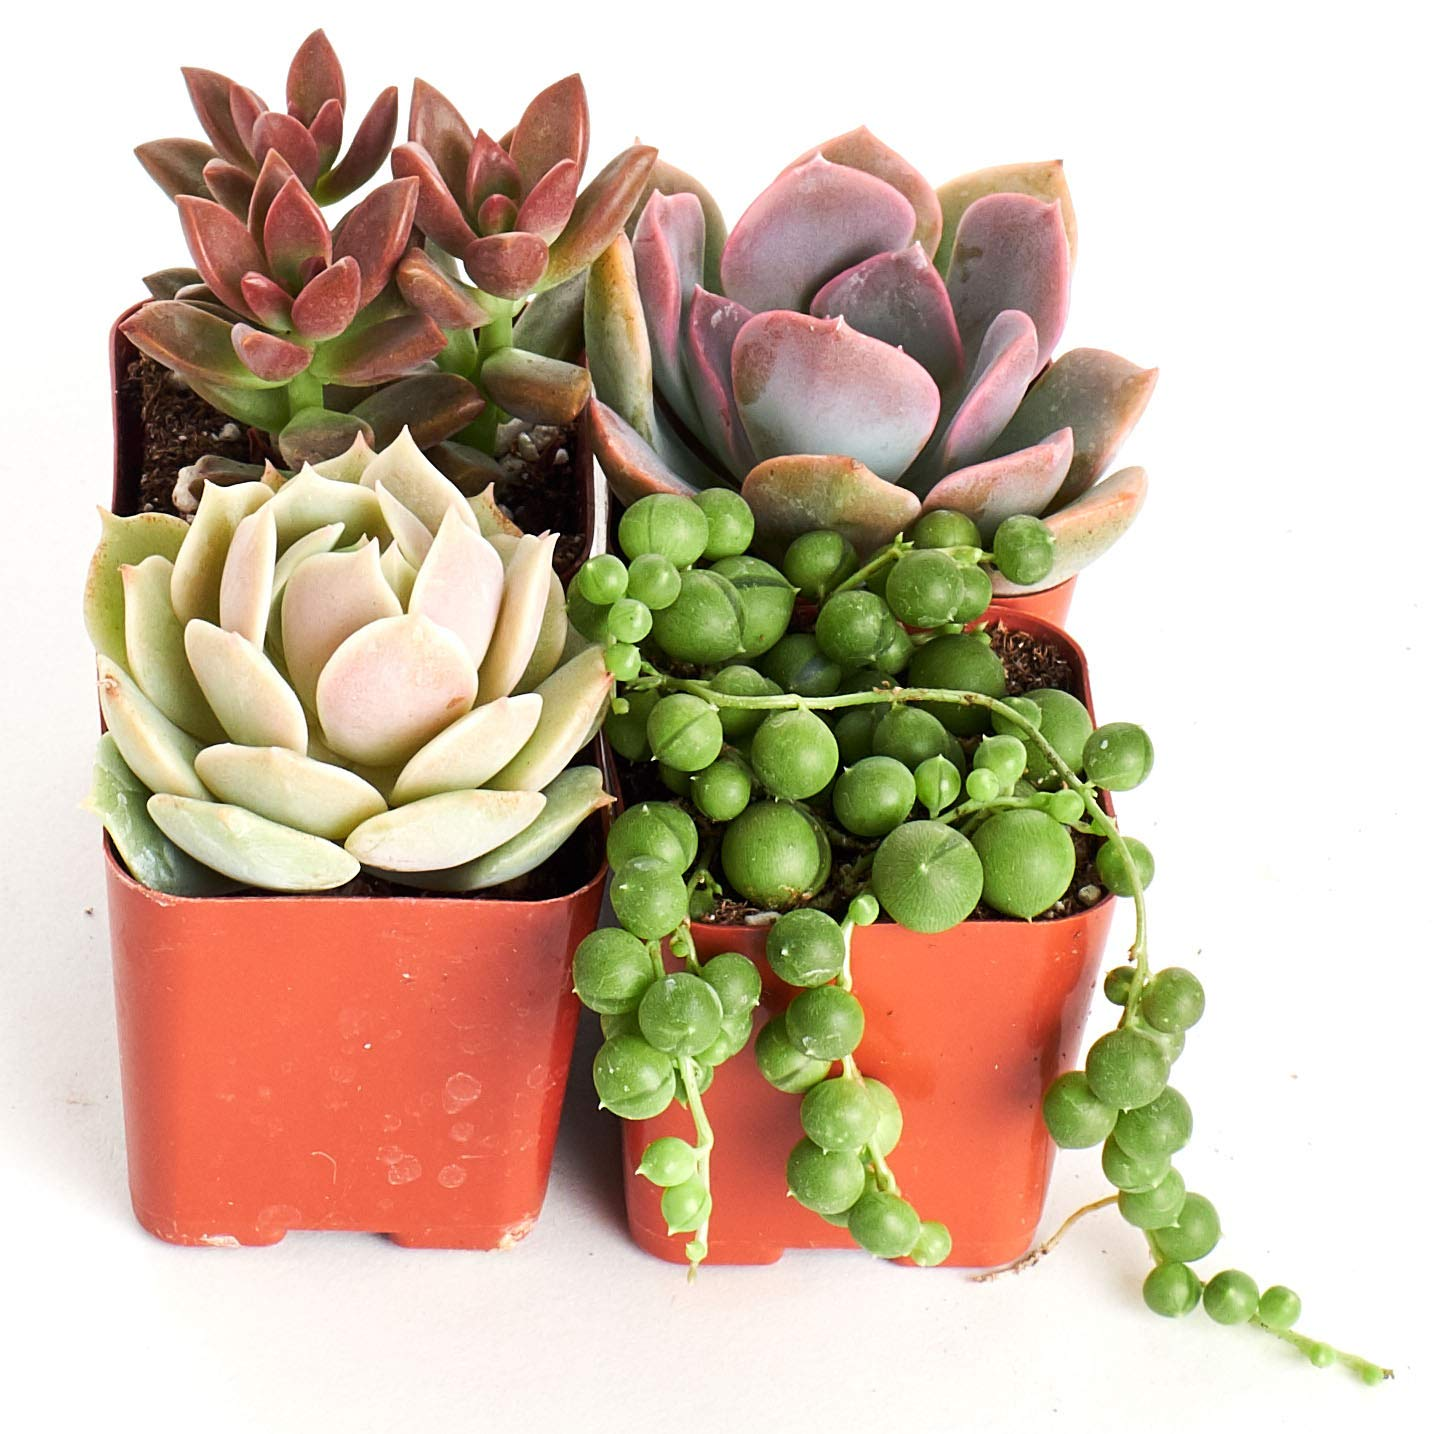 Shop Succulents | Good Juju Collection of Live Succulent Plants with Free Gift Crystal, Hand Selected Variety Pack of Mini Succulents | Collection of 4 by Shop Succulents